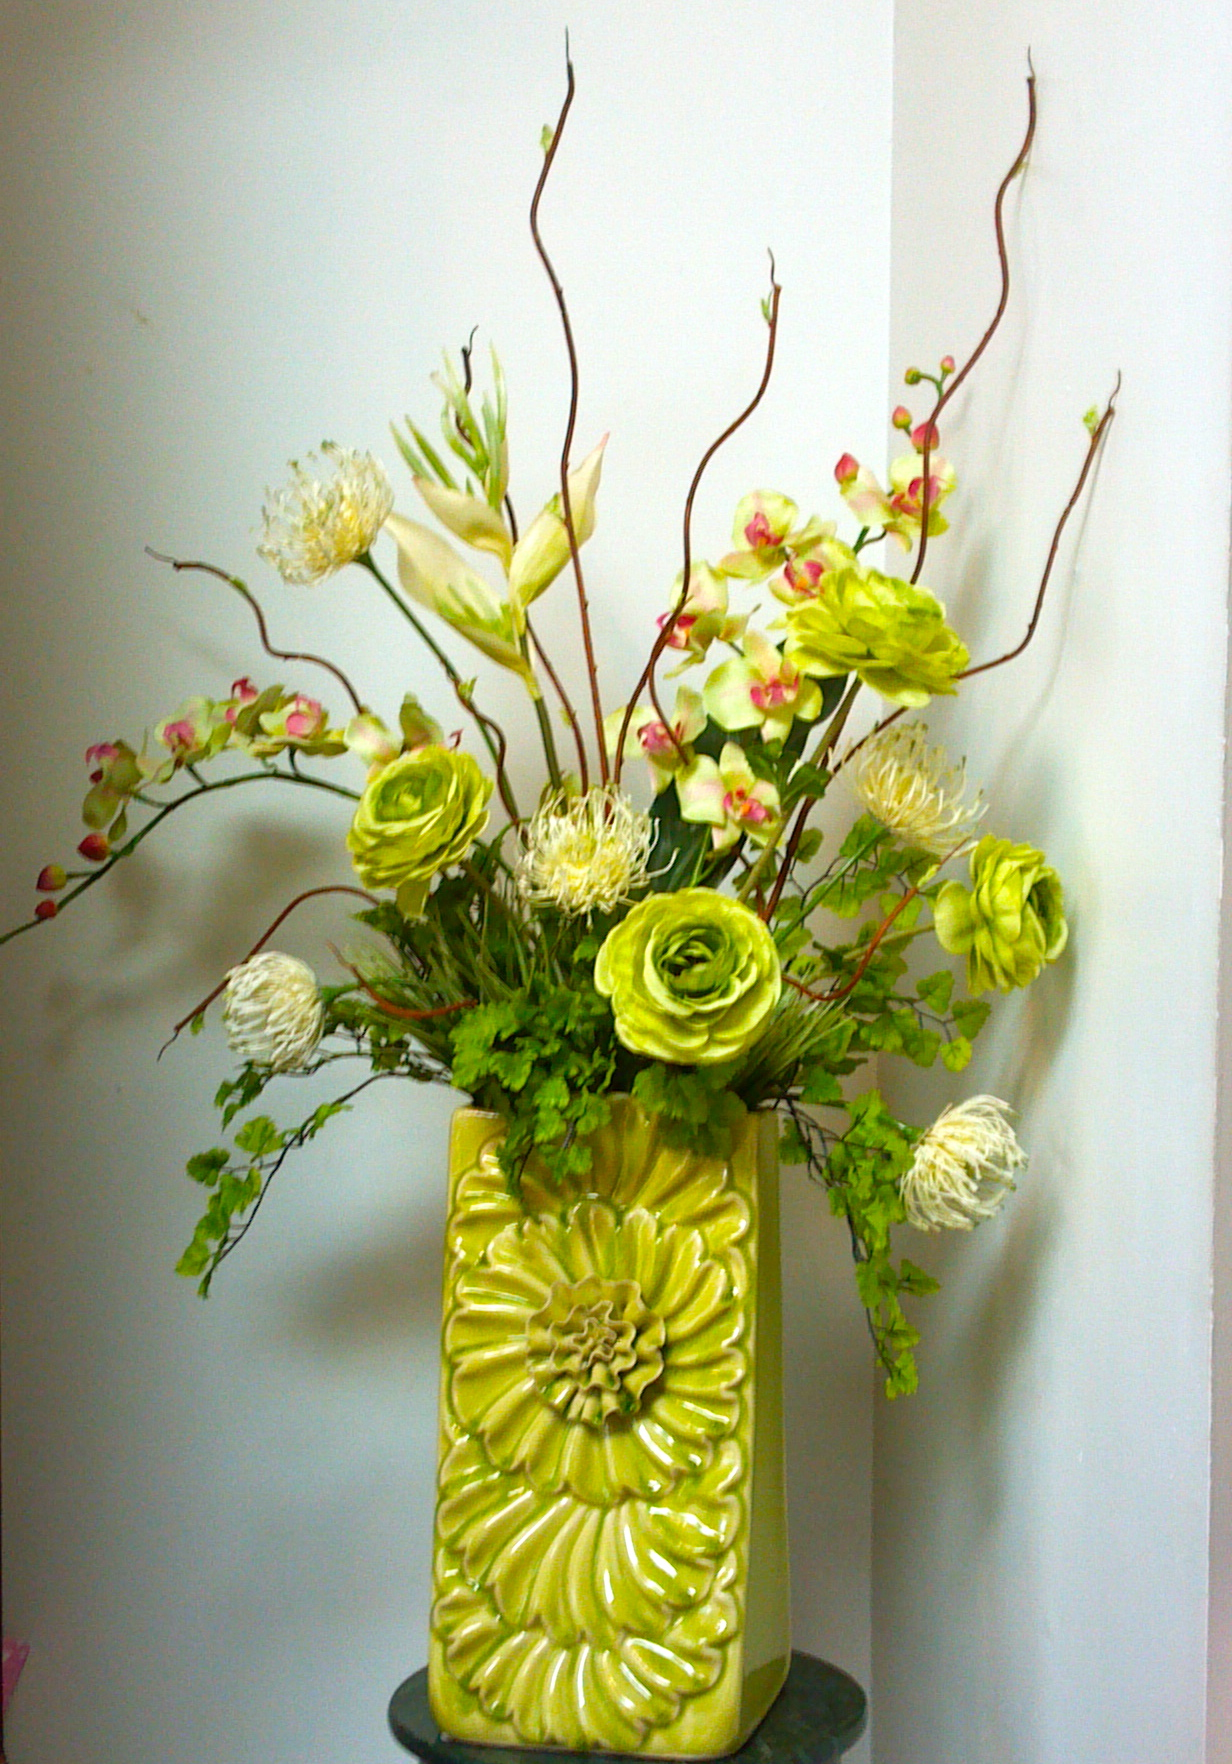 Fruit of the spirit floral designs artist feature Floral arrangements with fruit